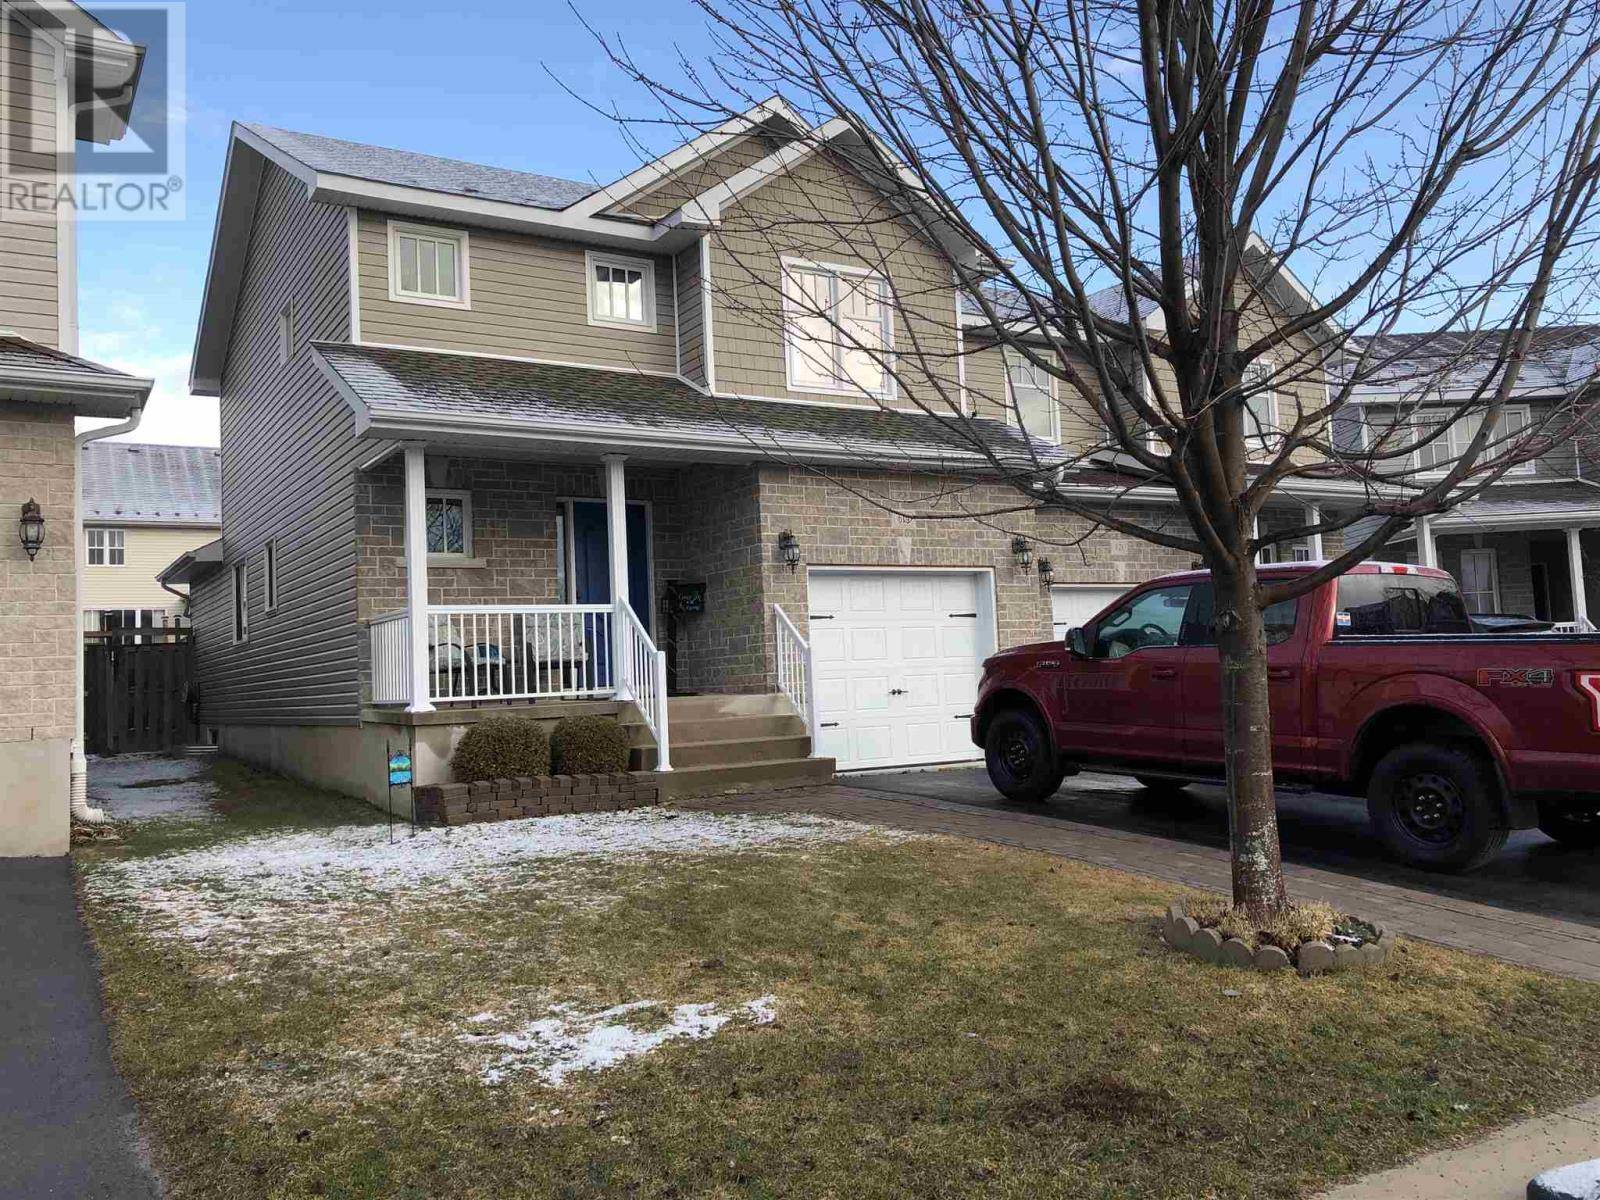 House for sale at 619 Walters St Kingston Ontario - MLS: K20001651